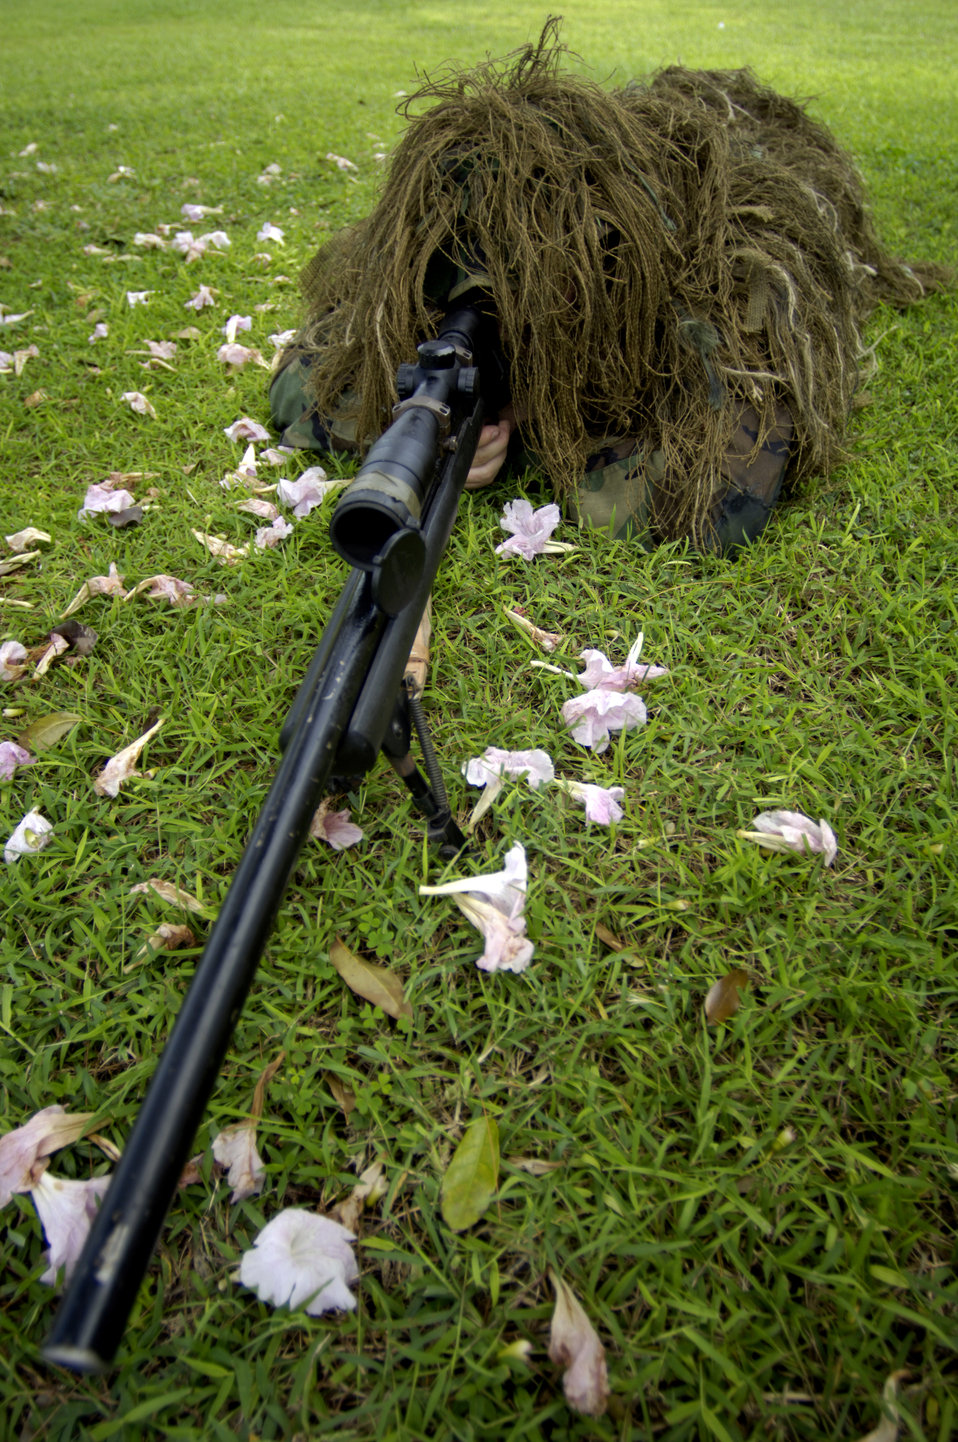 Sniper exercise